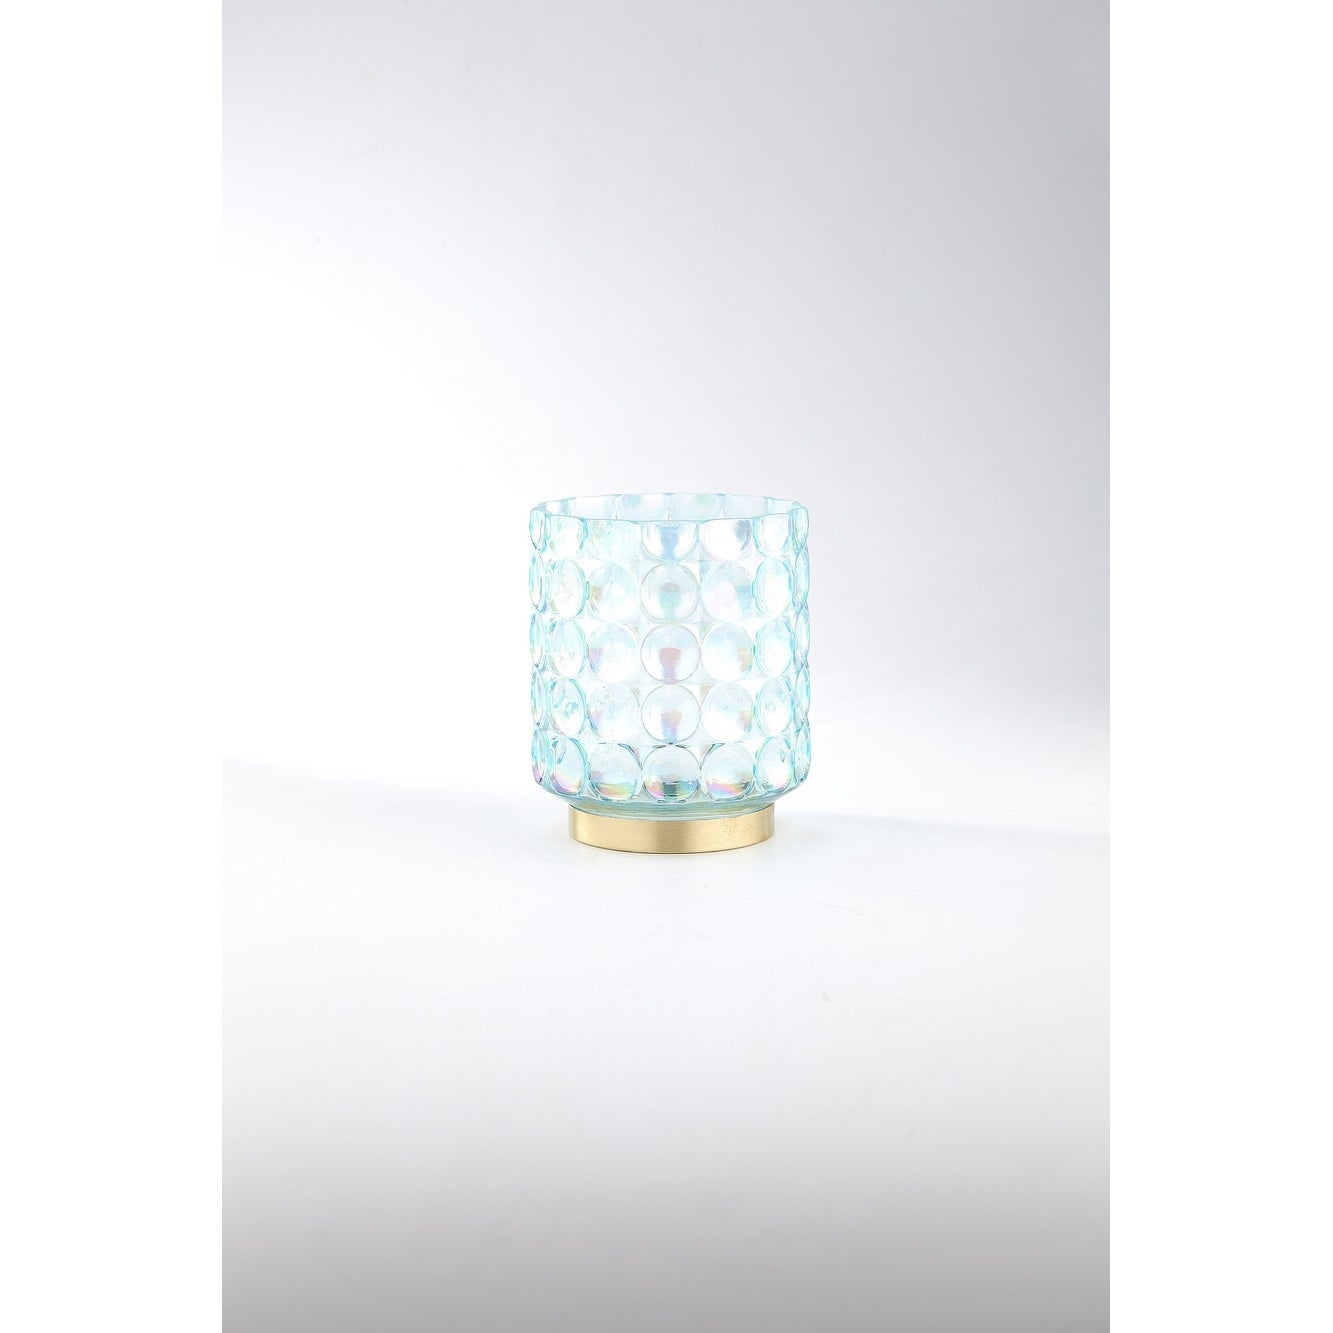 Glass Votive Candle Holders For Sconces Cheaper Than Retail Price Buy Clothing Accessories And Lifestyle Products For Women Men